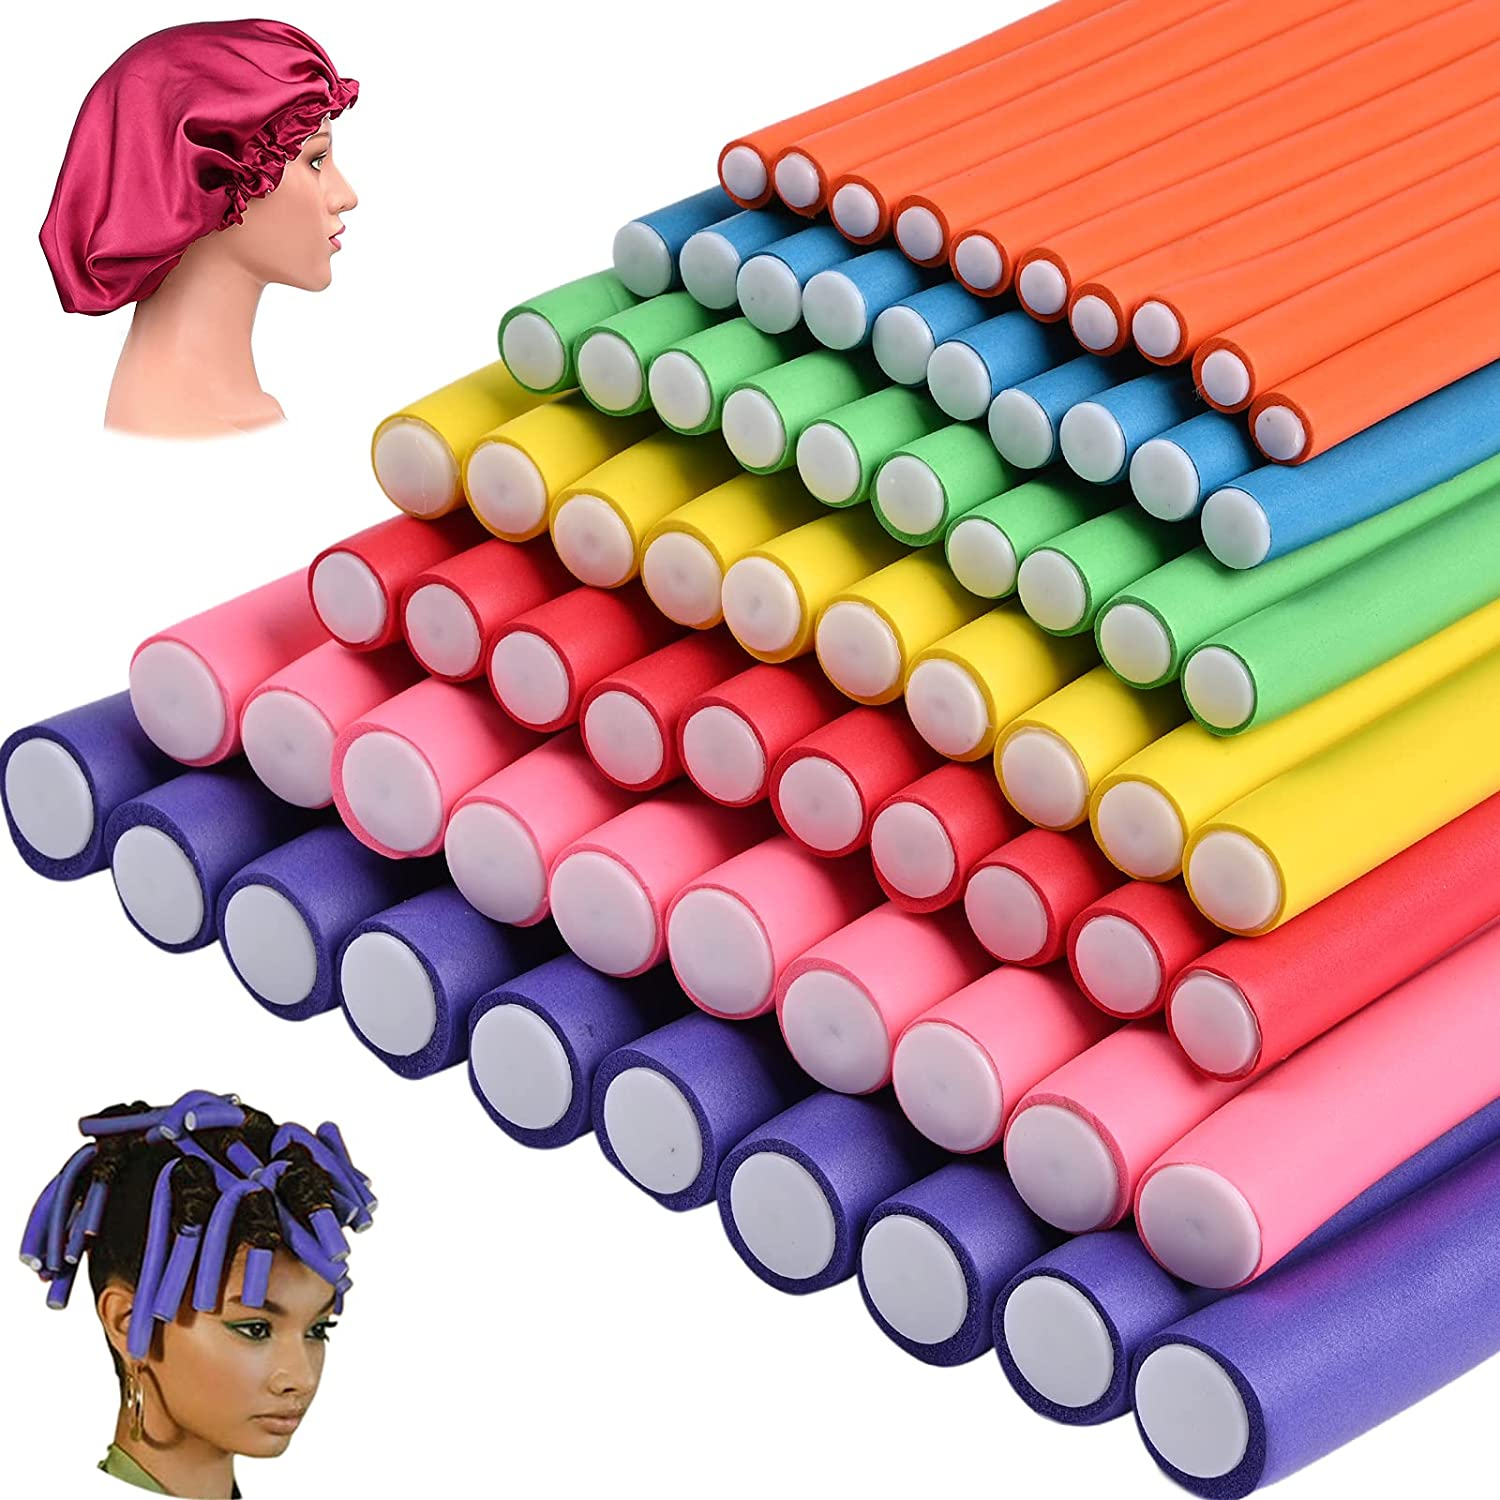 70 Pack 9.4 Inch Flex-rods Hair 35% OFF Rollers+Silk Tw Bonnet Cap Sleep Today's only